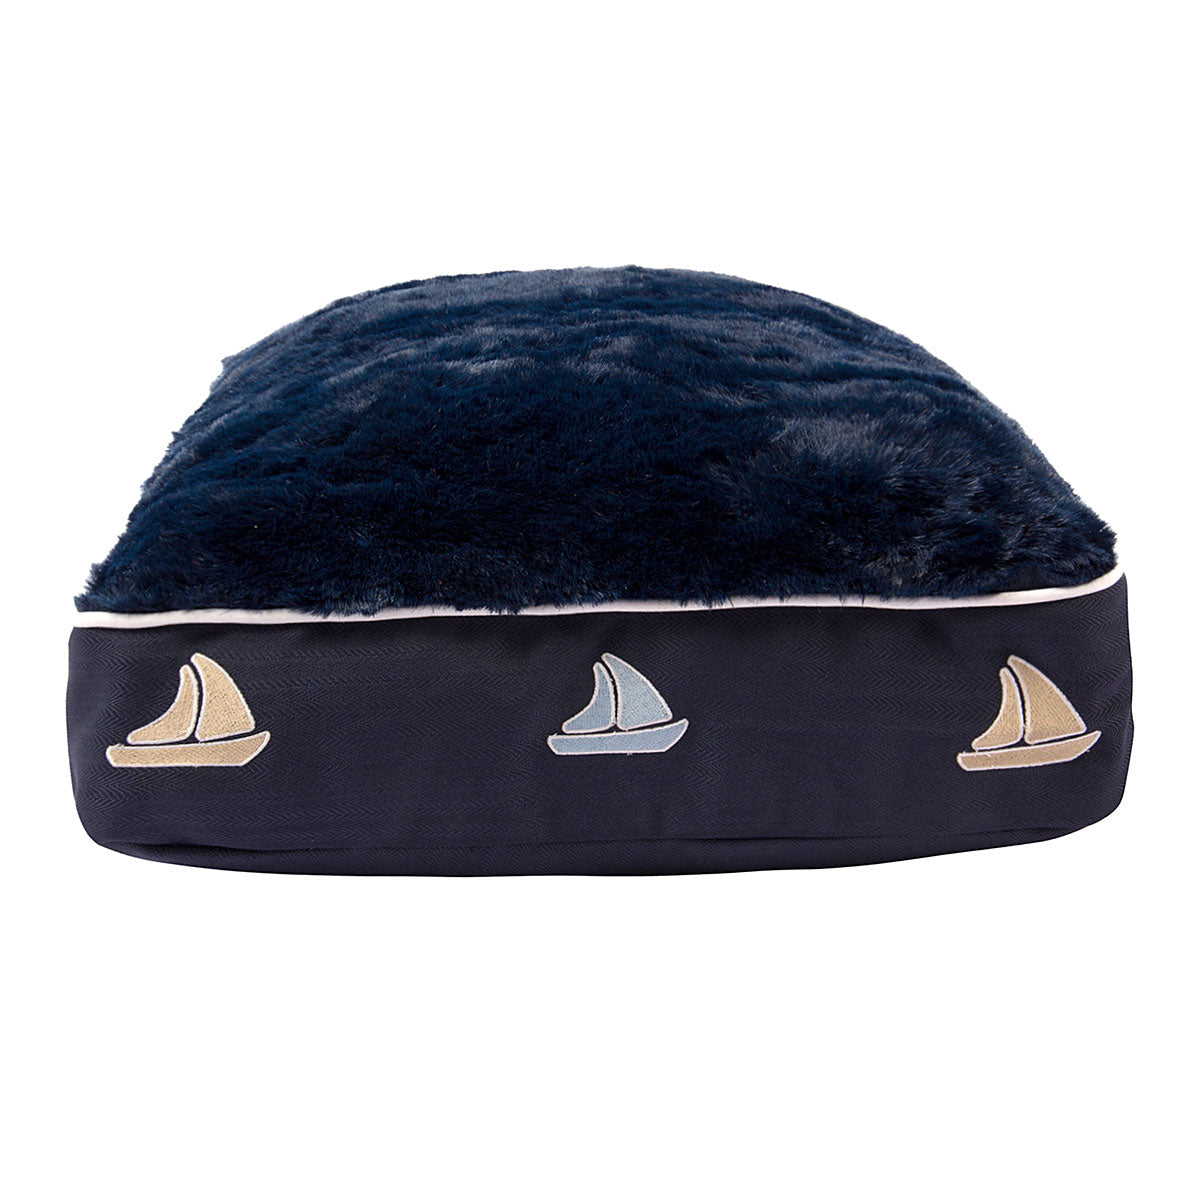 Halo Sailboat Rectangular Dog Bed - Halo - Breeches.com